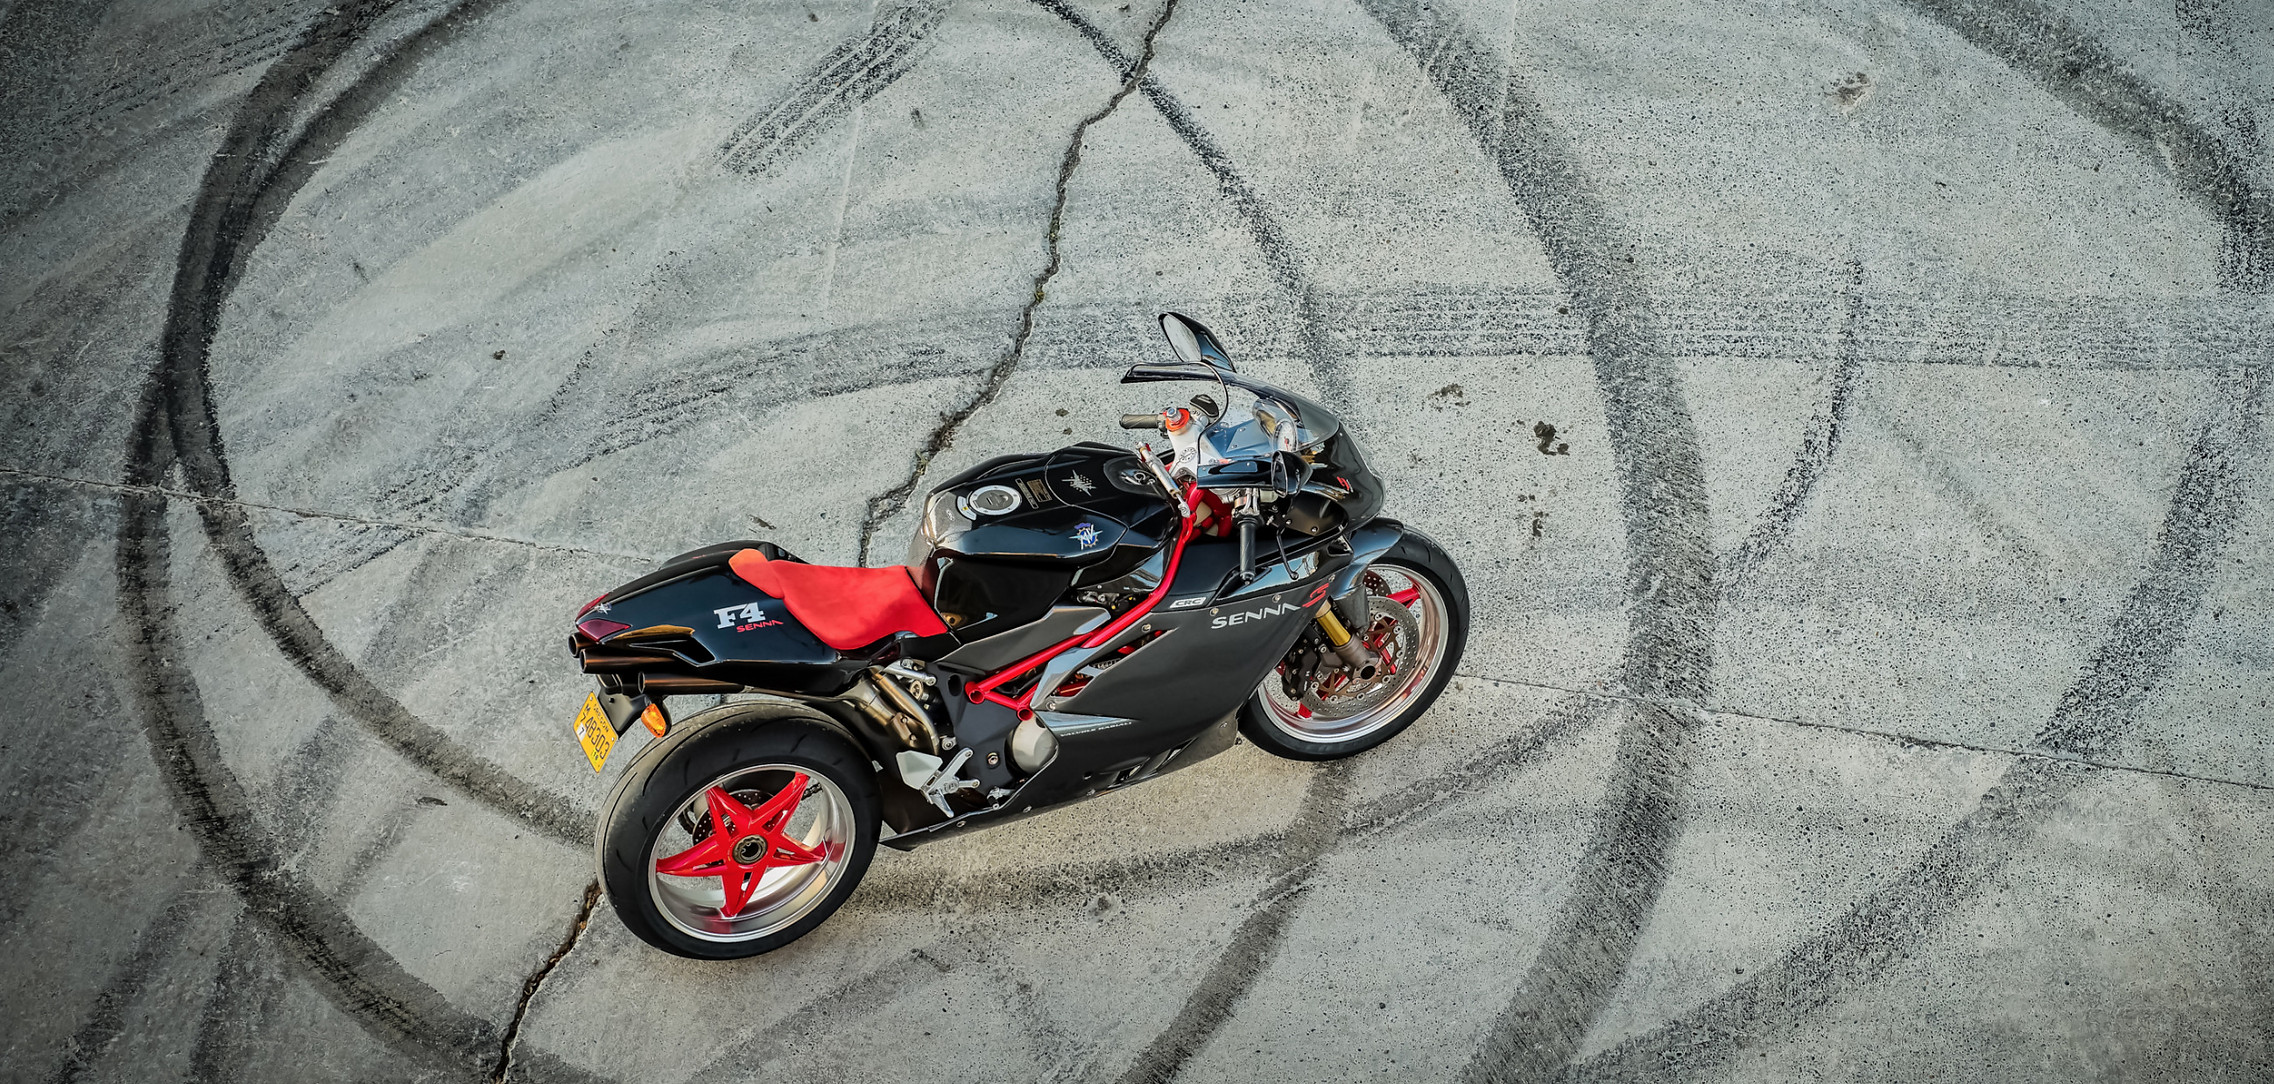 The Image Engine MV Agusta F4 Senna_edit